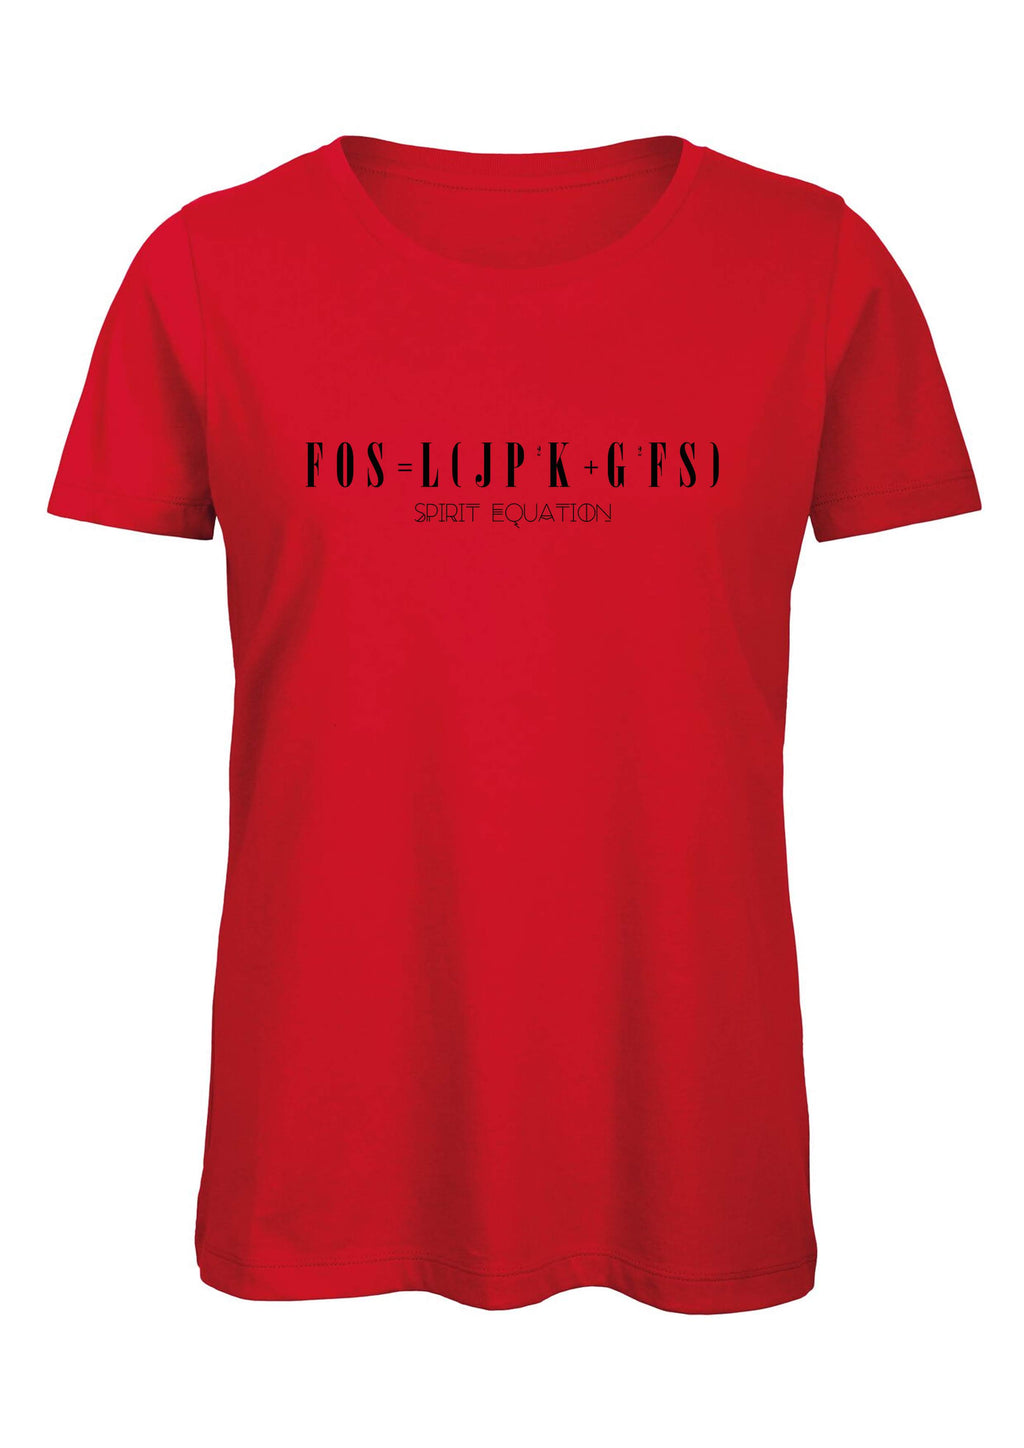 SPIRIT EQUATION T-shirt S/S (Red)